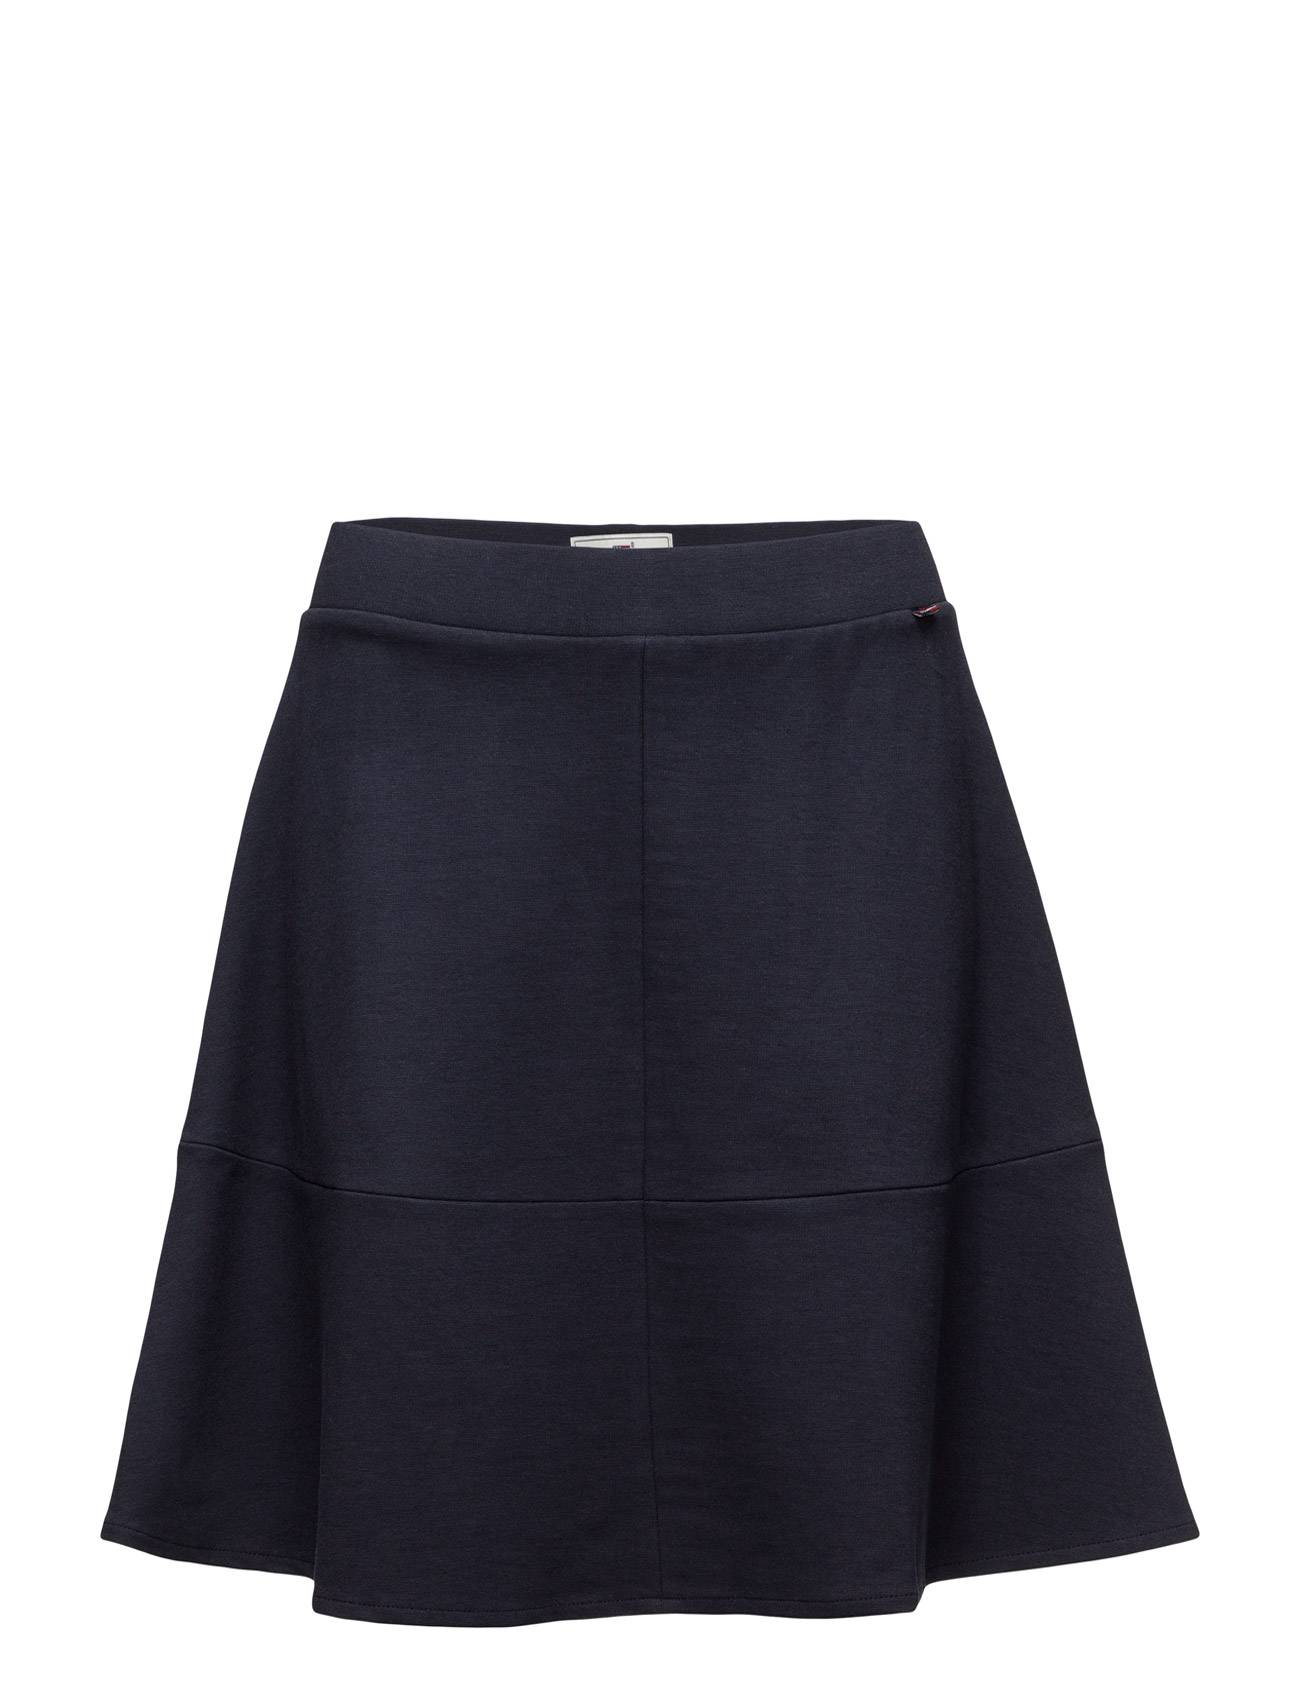 Lexington Company Helen Jersey Skirt